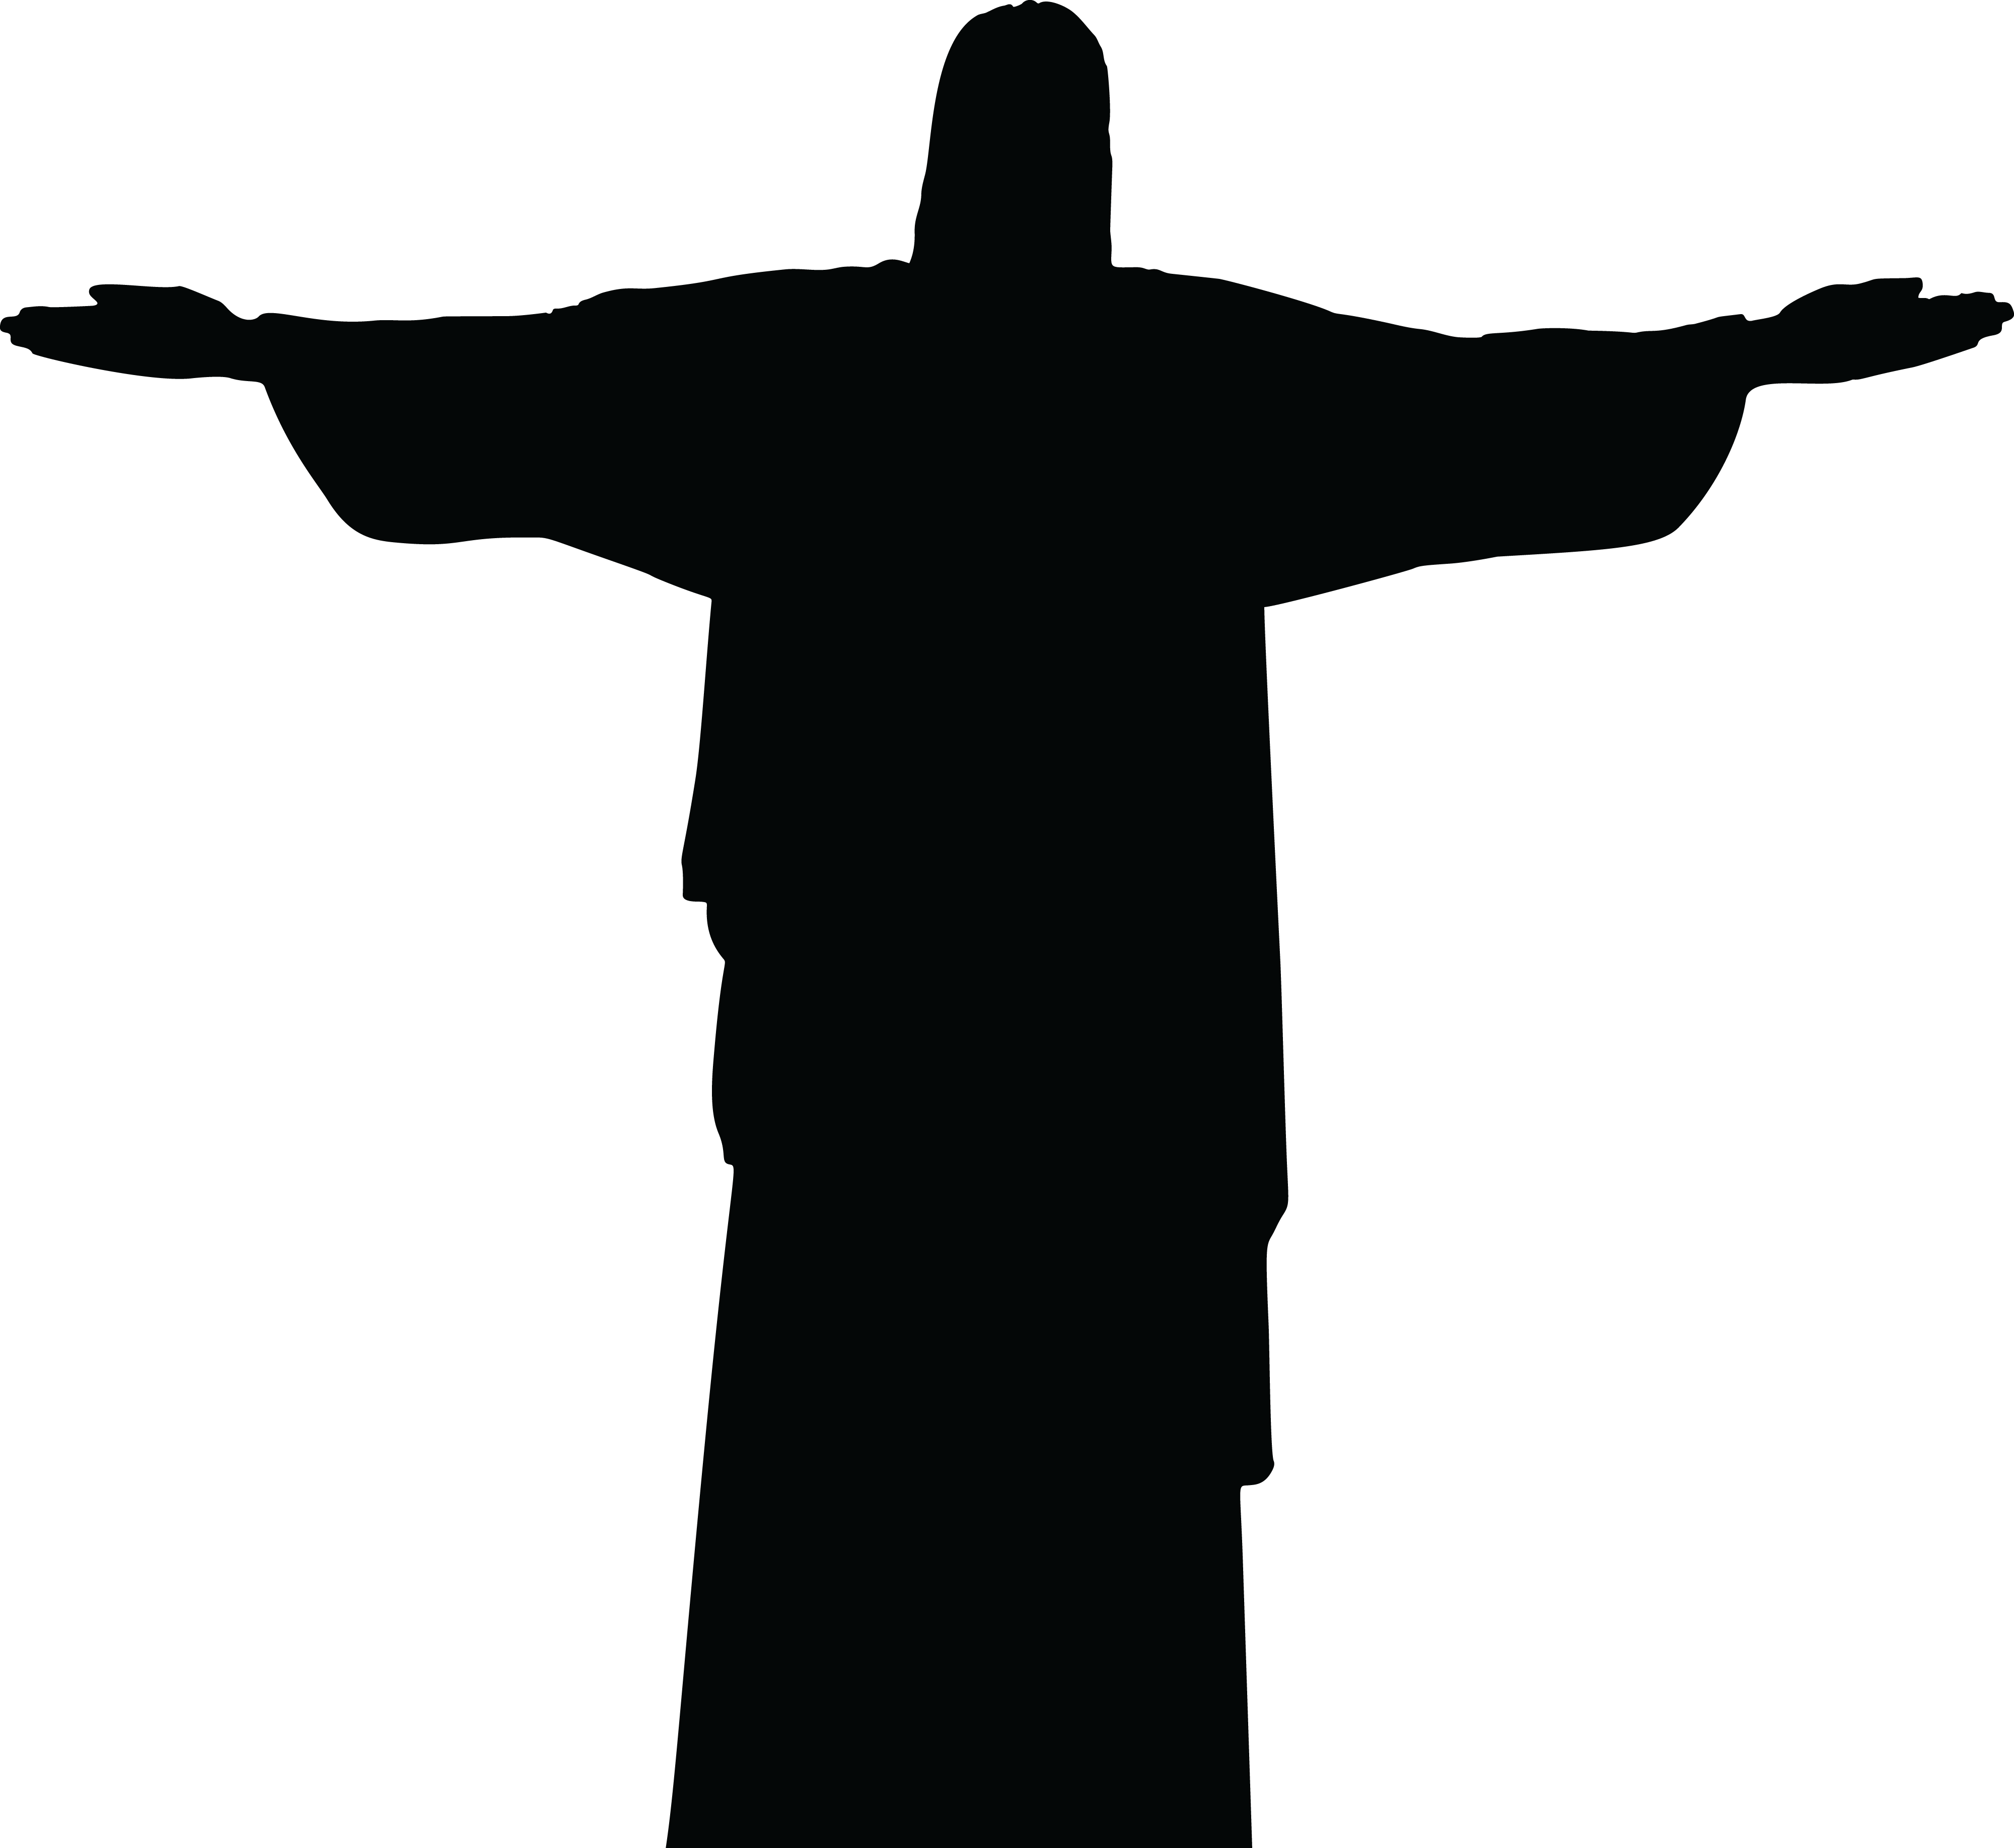 image free Christian cross clipart black and white. Jesus carrying silhouette at